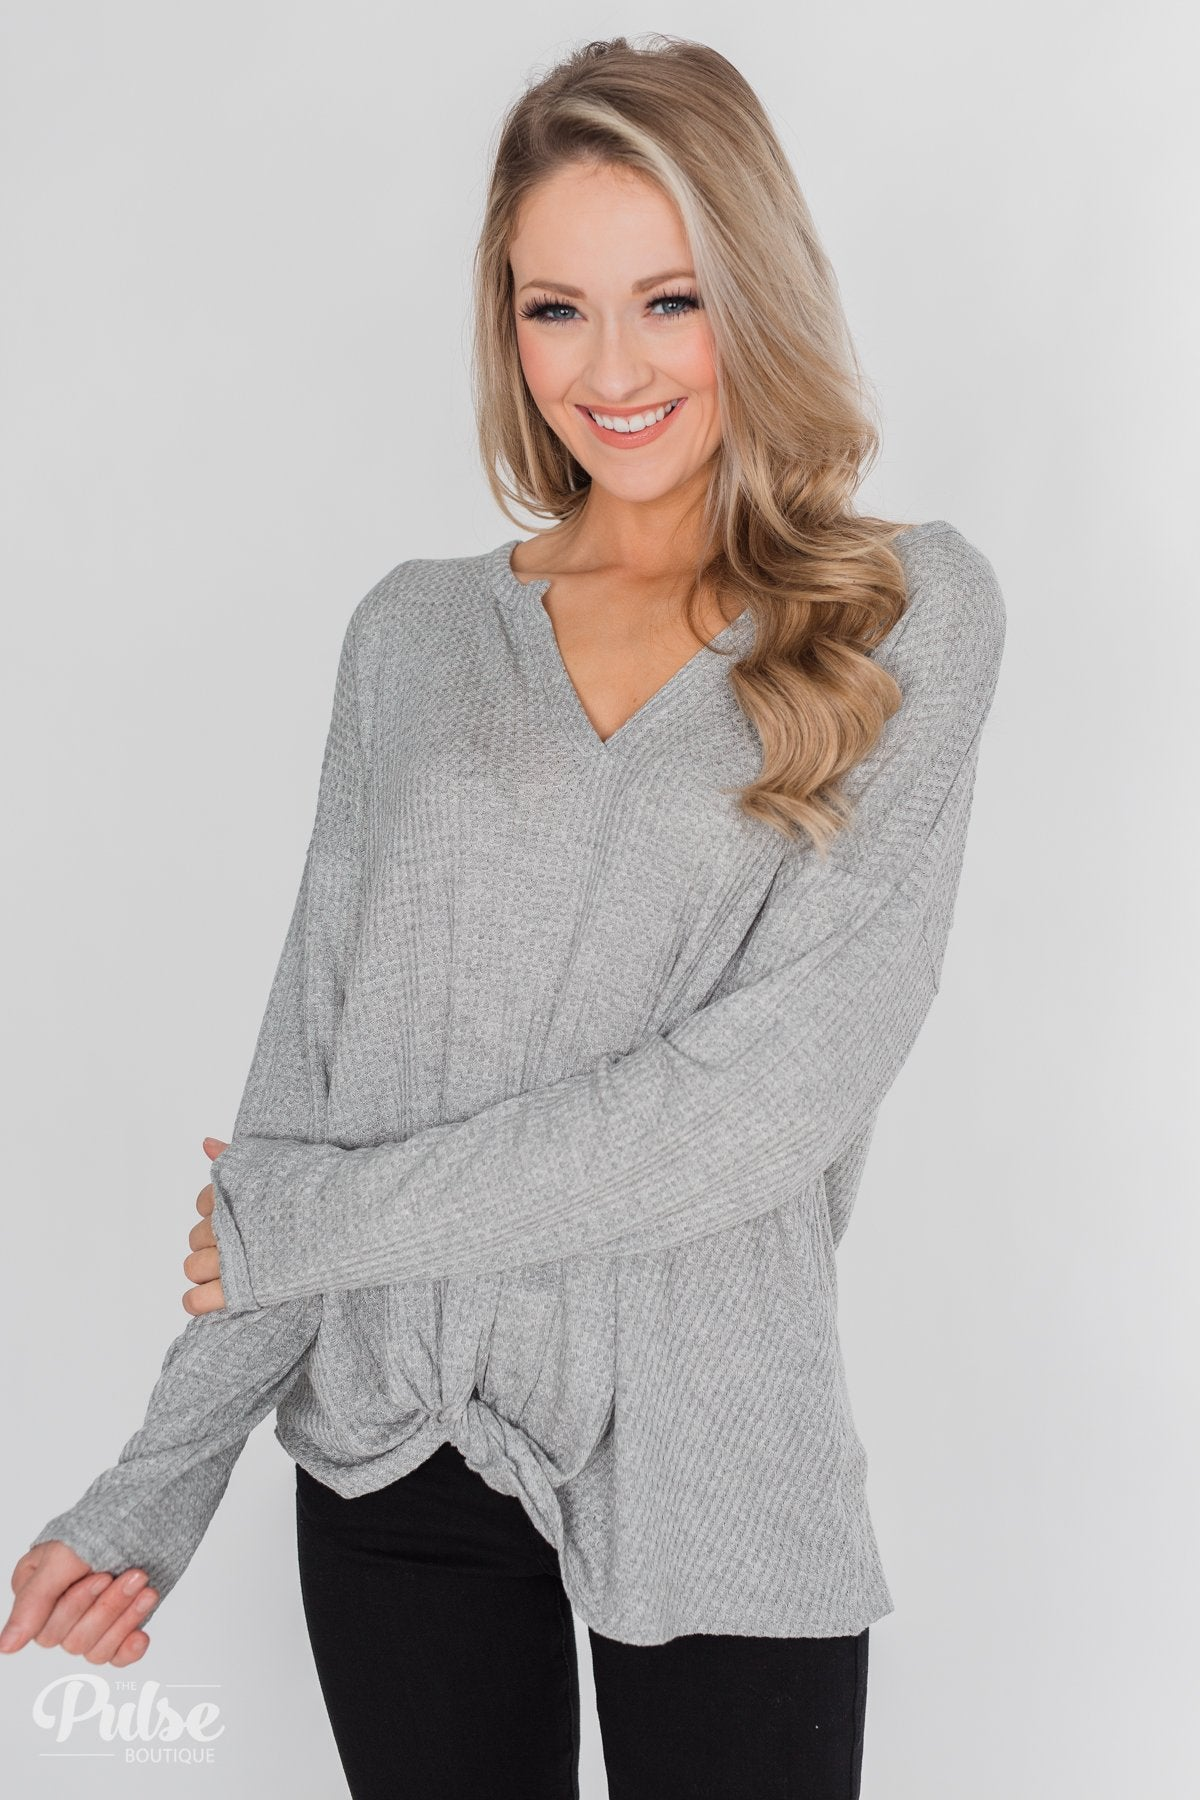 Twist a Little Closer Thermal Top - Heather Grey